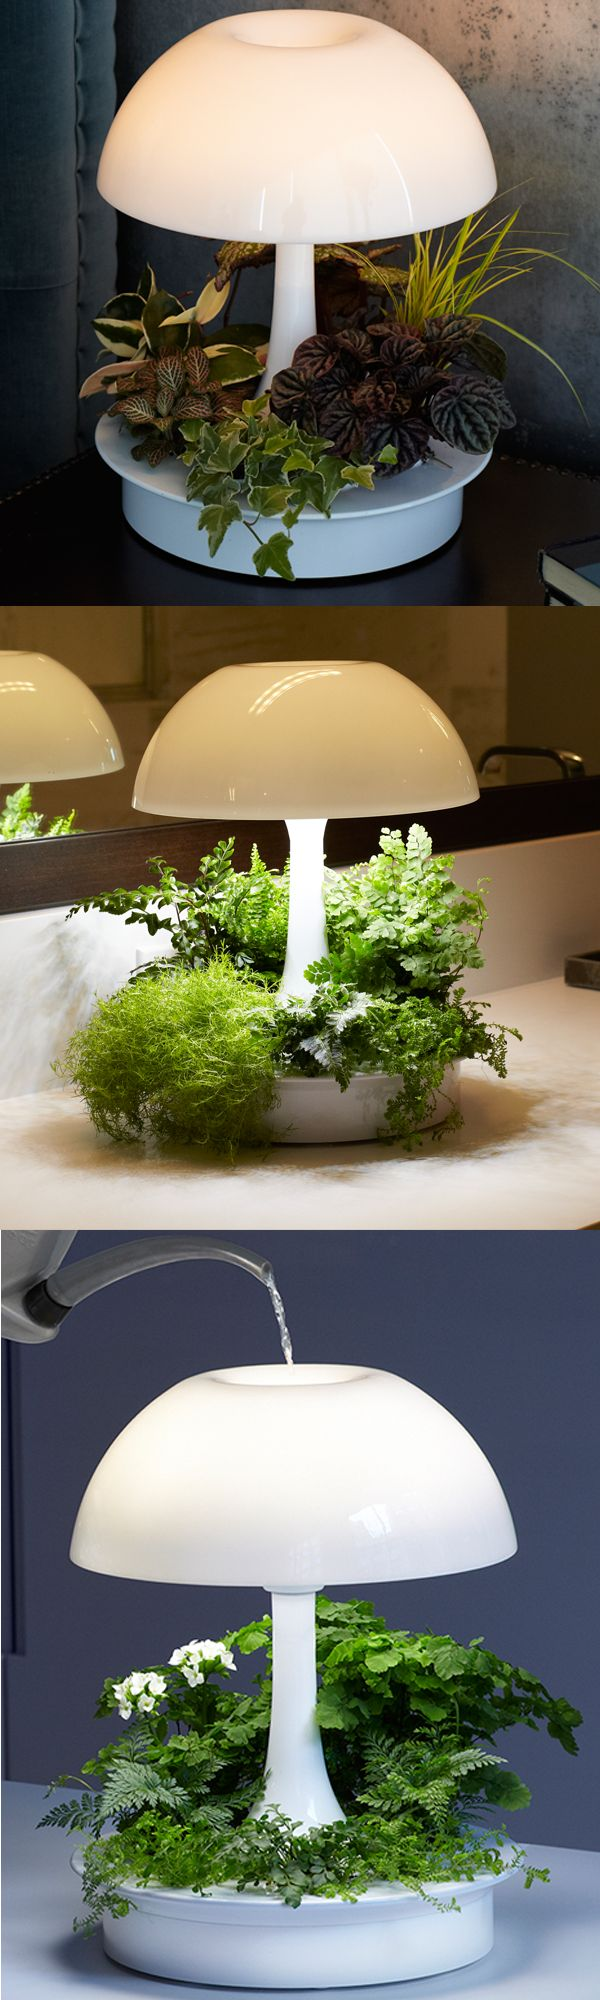 Best 25+ Grow lights ideas on Pinterest | Grow lights for ...